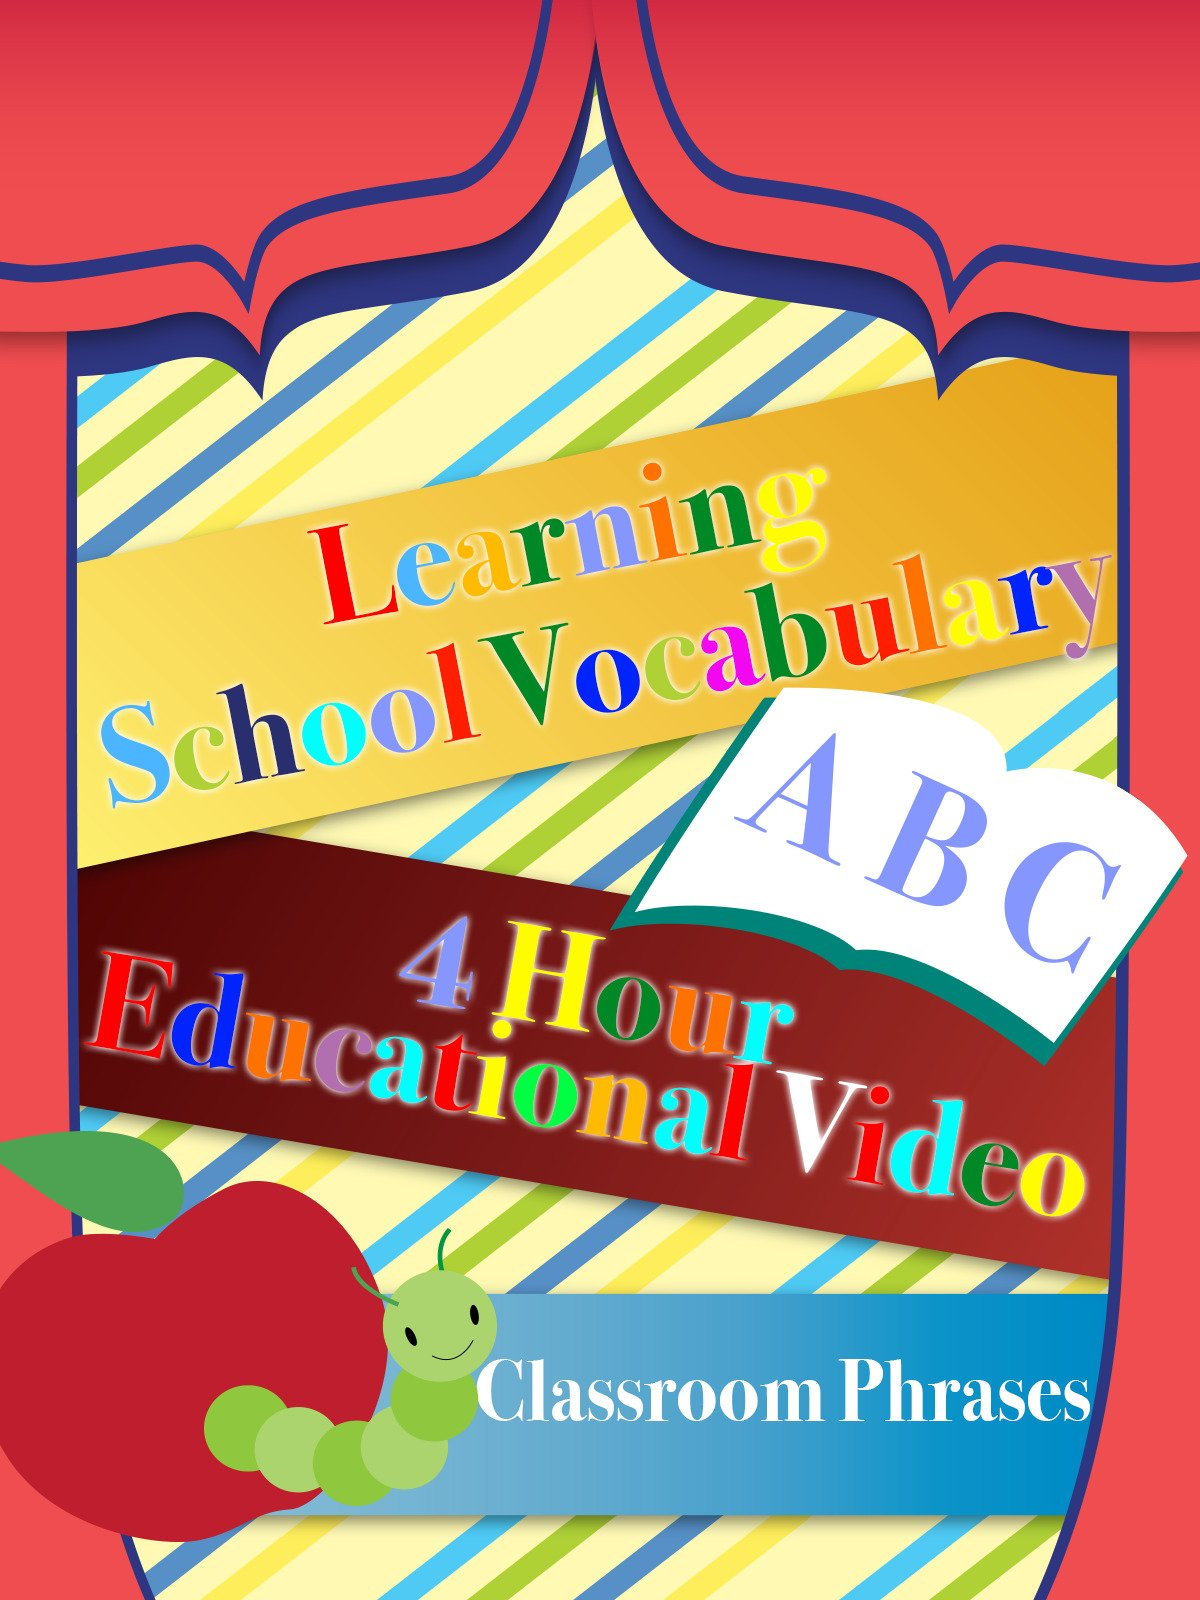 Learning School Vocabulary 4 Hour Educational Video Classroom Phrases on Amazon Prime Instant Video UK